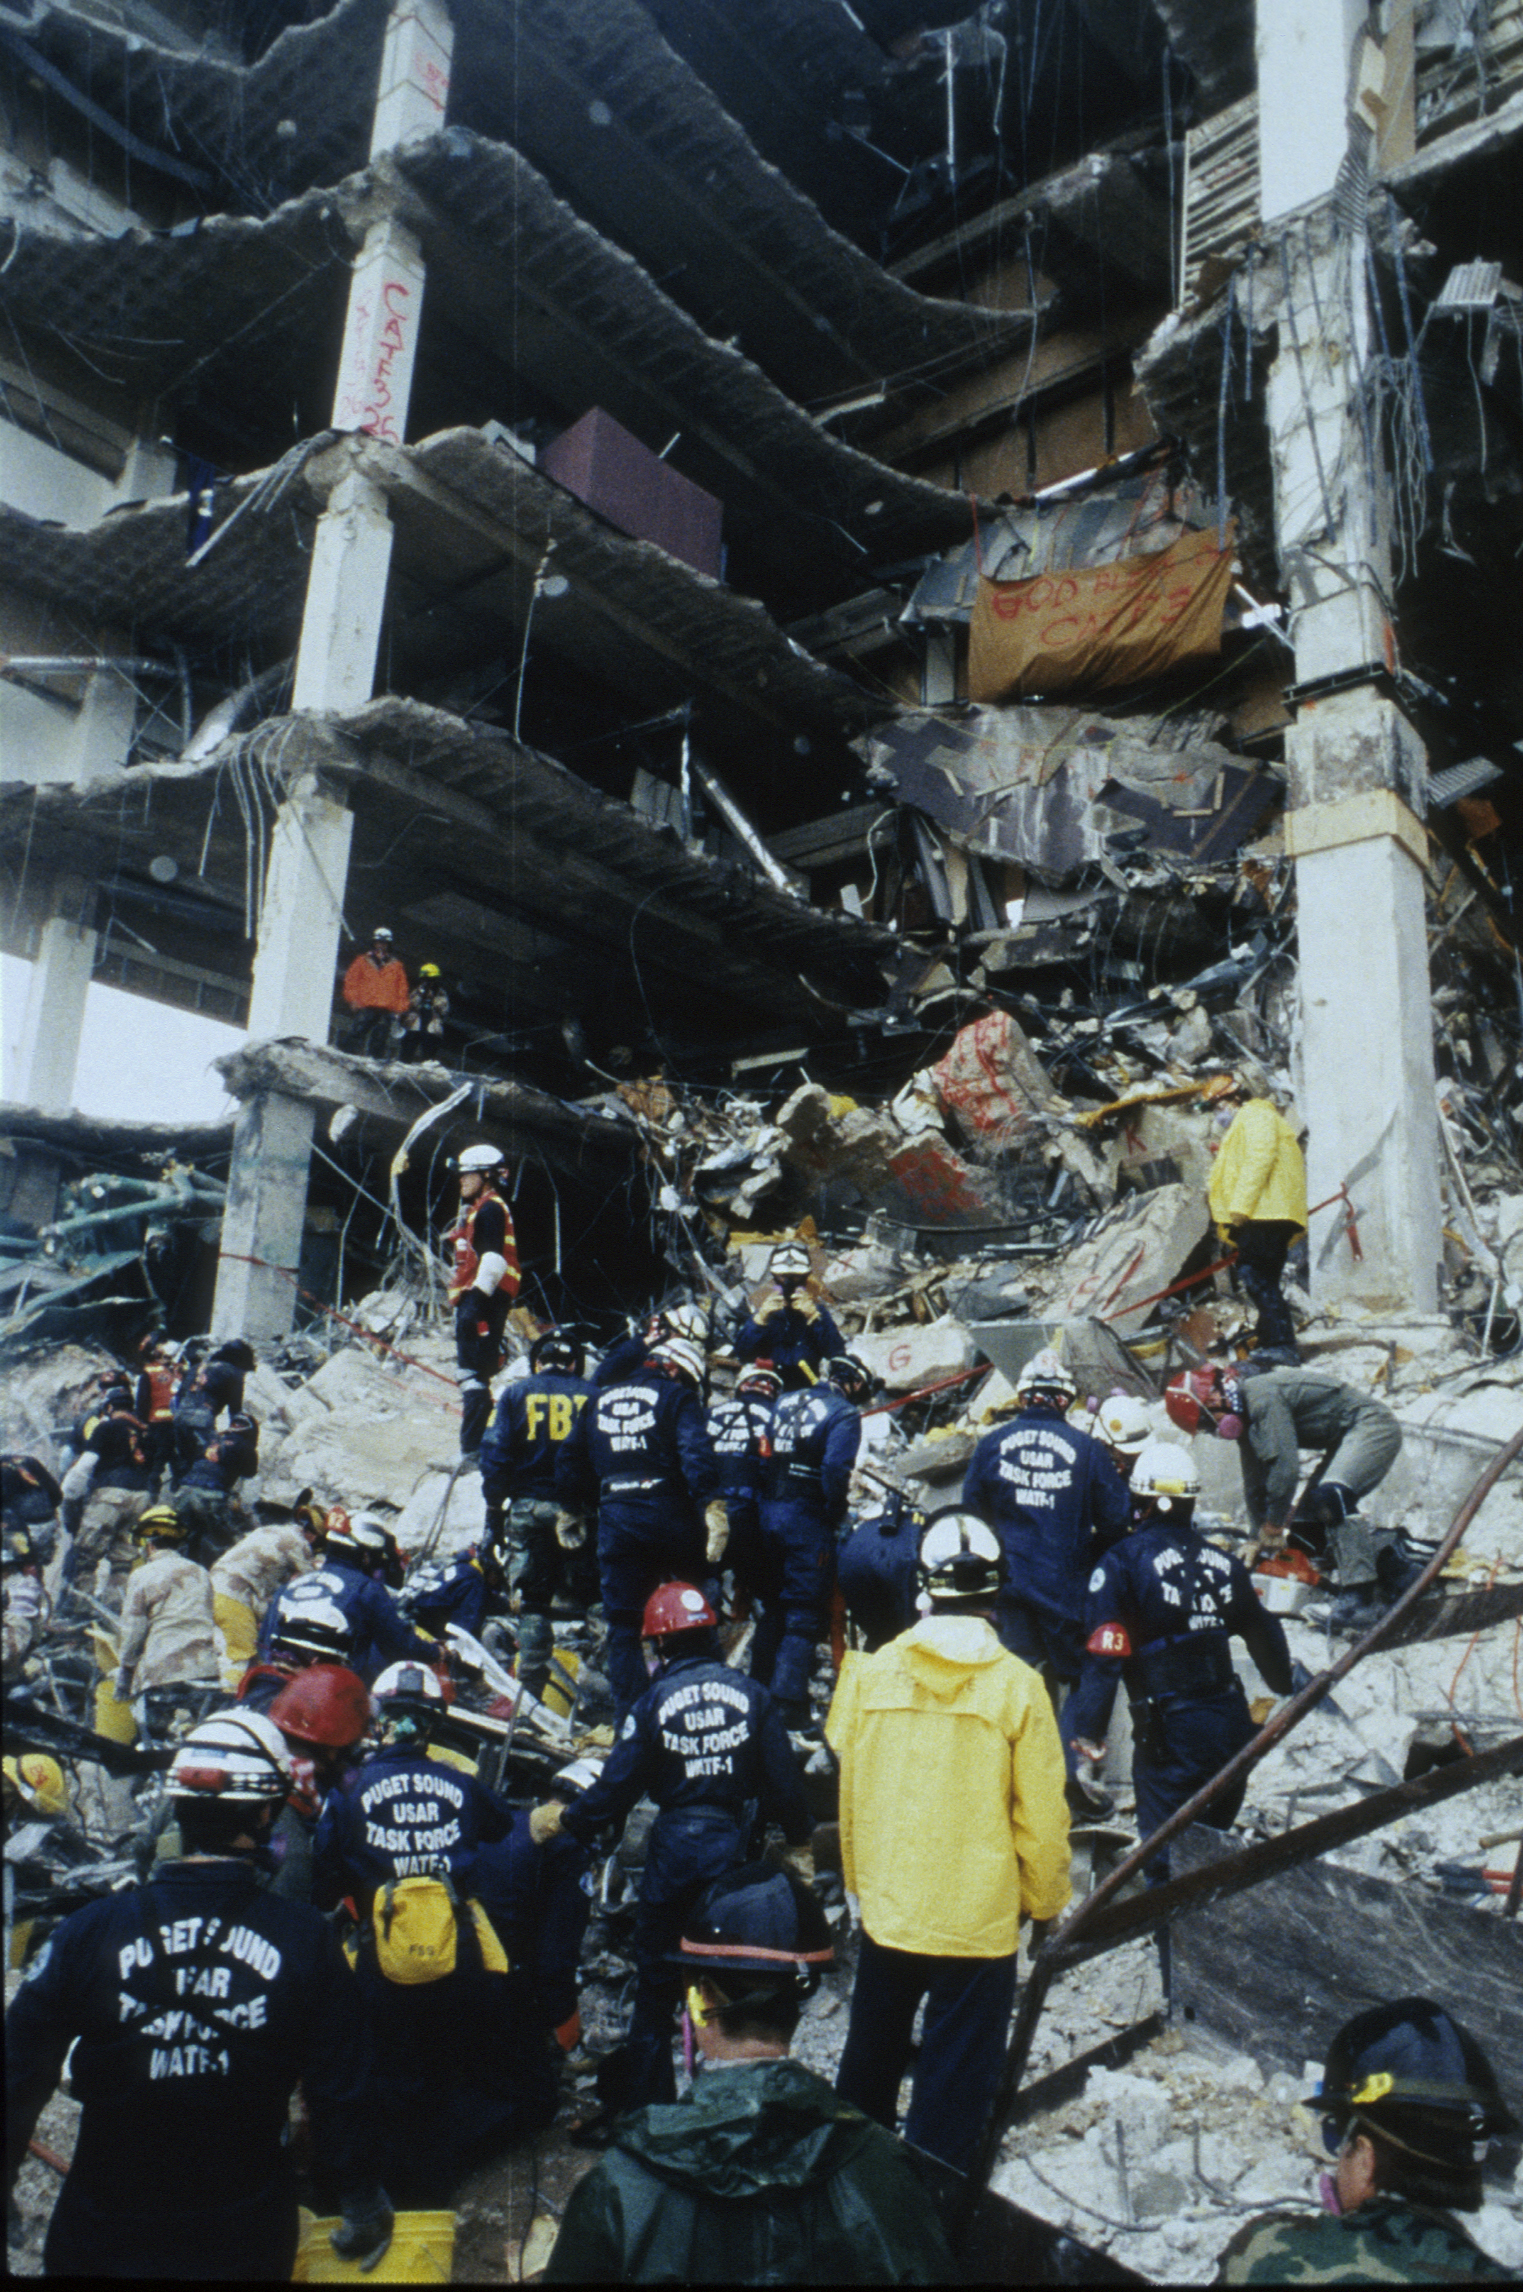 a critique of the handling of the oklahoma city bombing Some response efforts are judged kindly (oklahoma city bombing), some mercilessly (hurricane katrina), and others reveal learning points and spark national growth in the discipline (9/11.